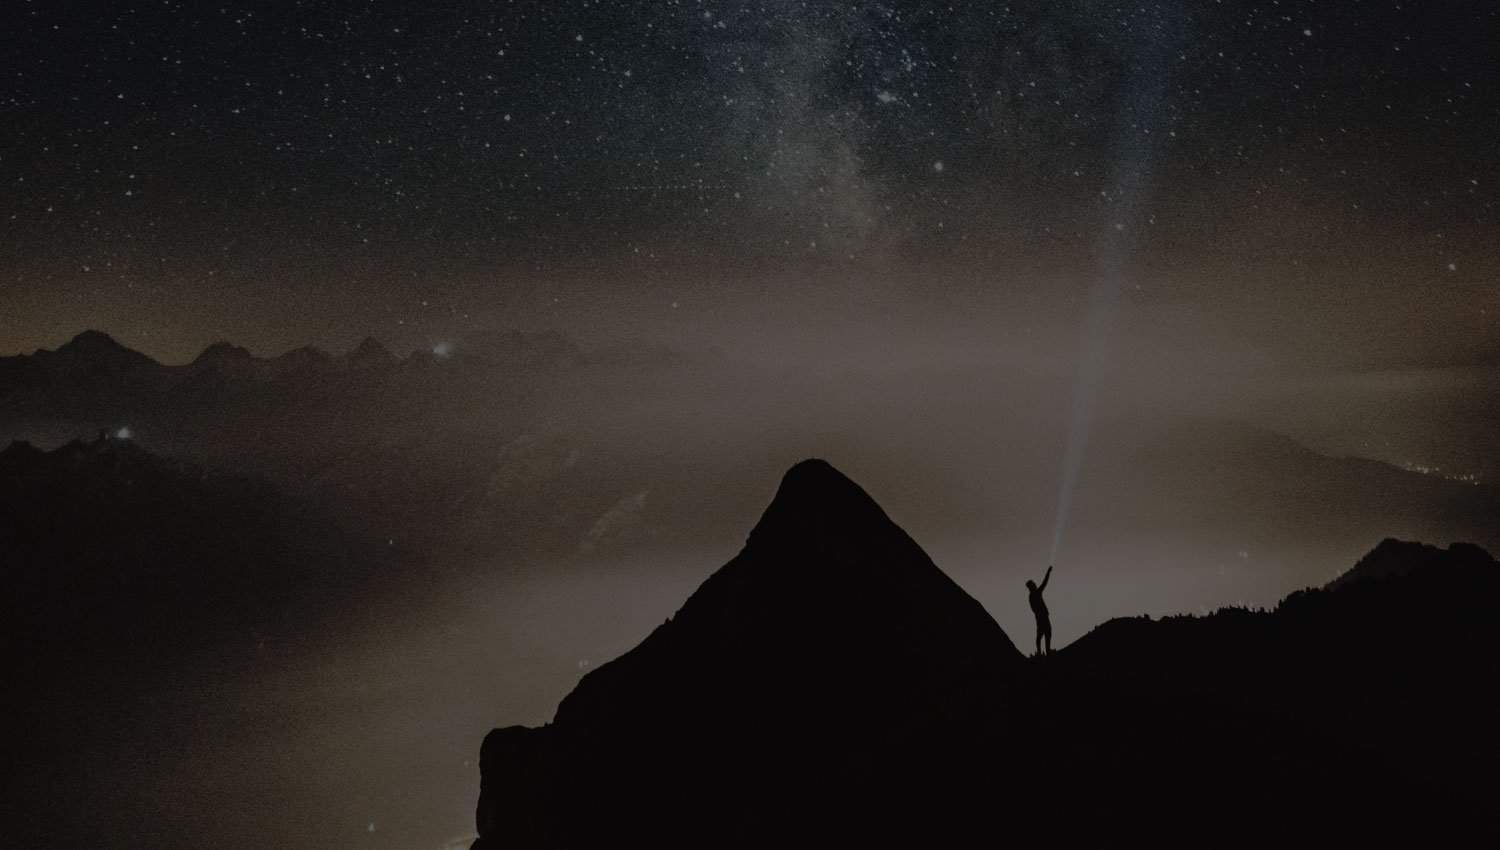 Person standing on top of a mountain, shining a light into the sky